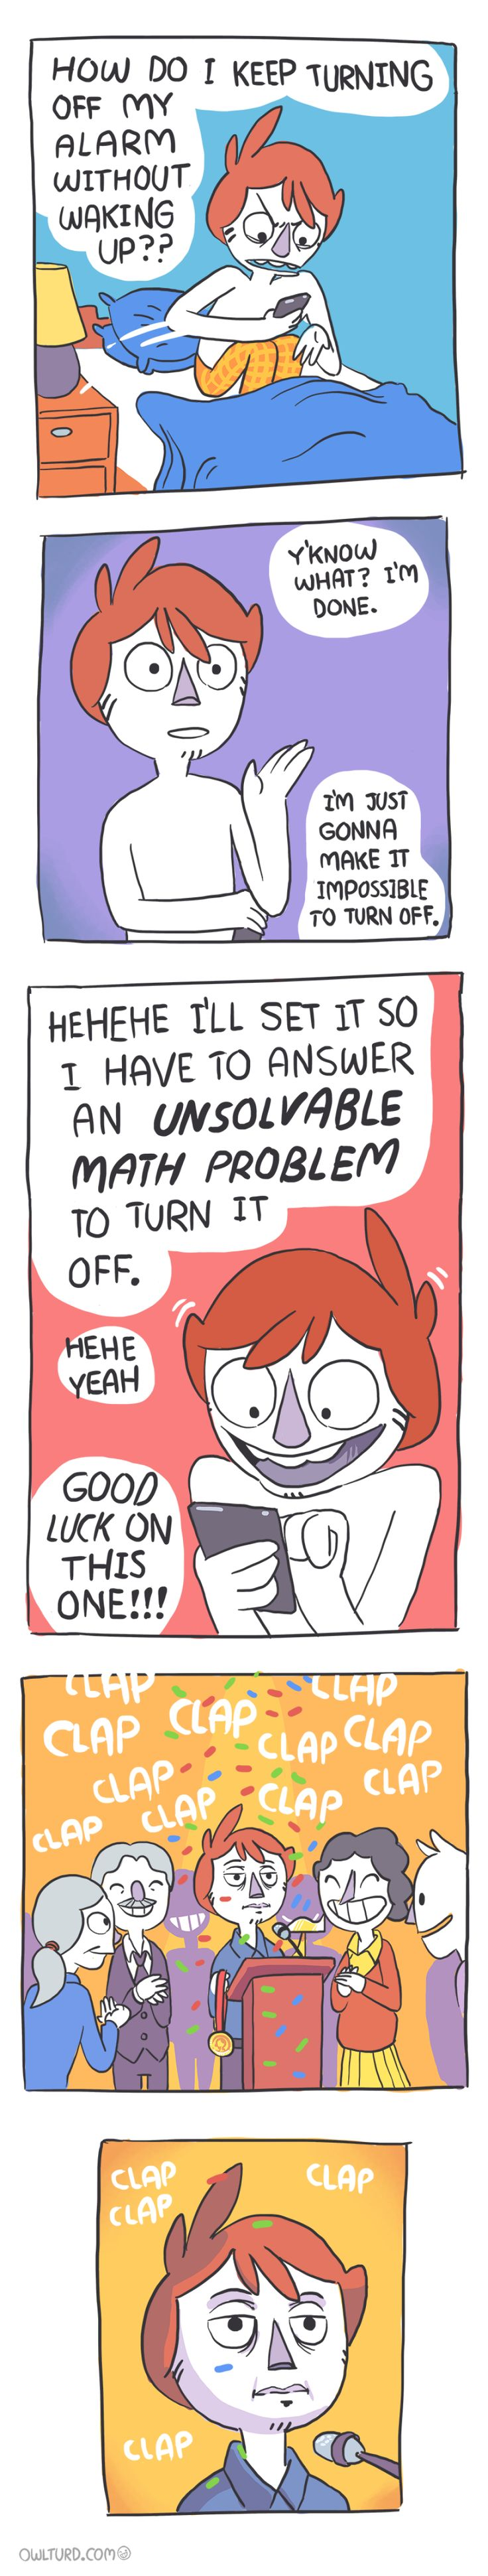 Best Comics And Cartoons Ideas On Pinterest Cute Love - 21 designer problems turned into funny comics that tell the absolute truth